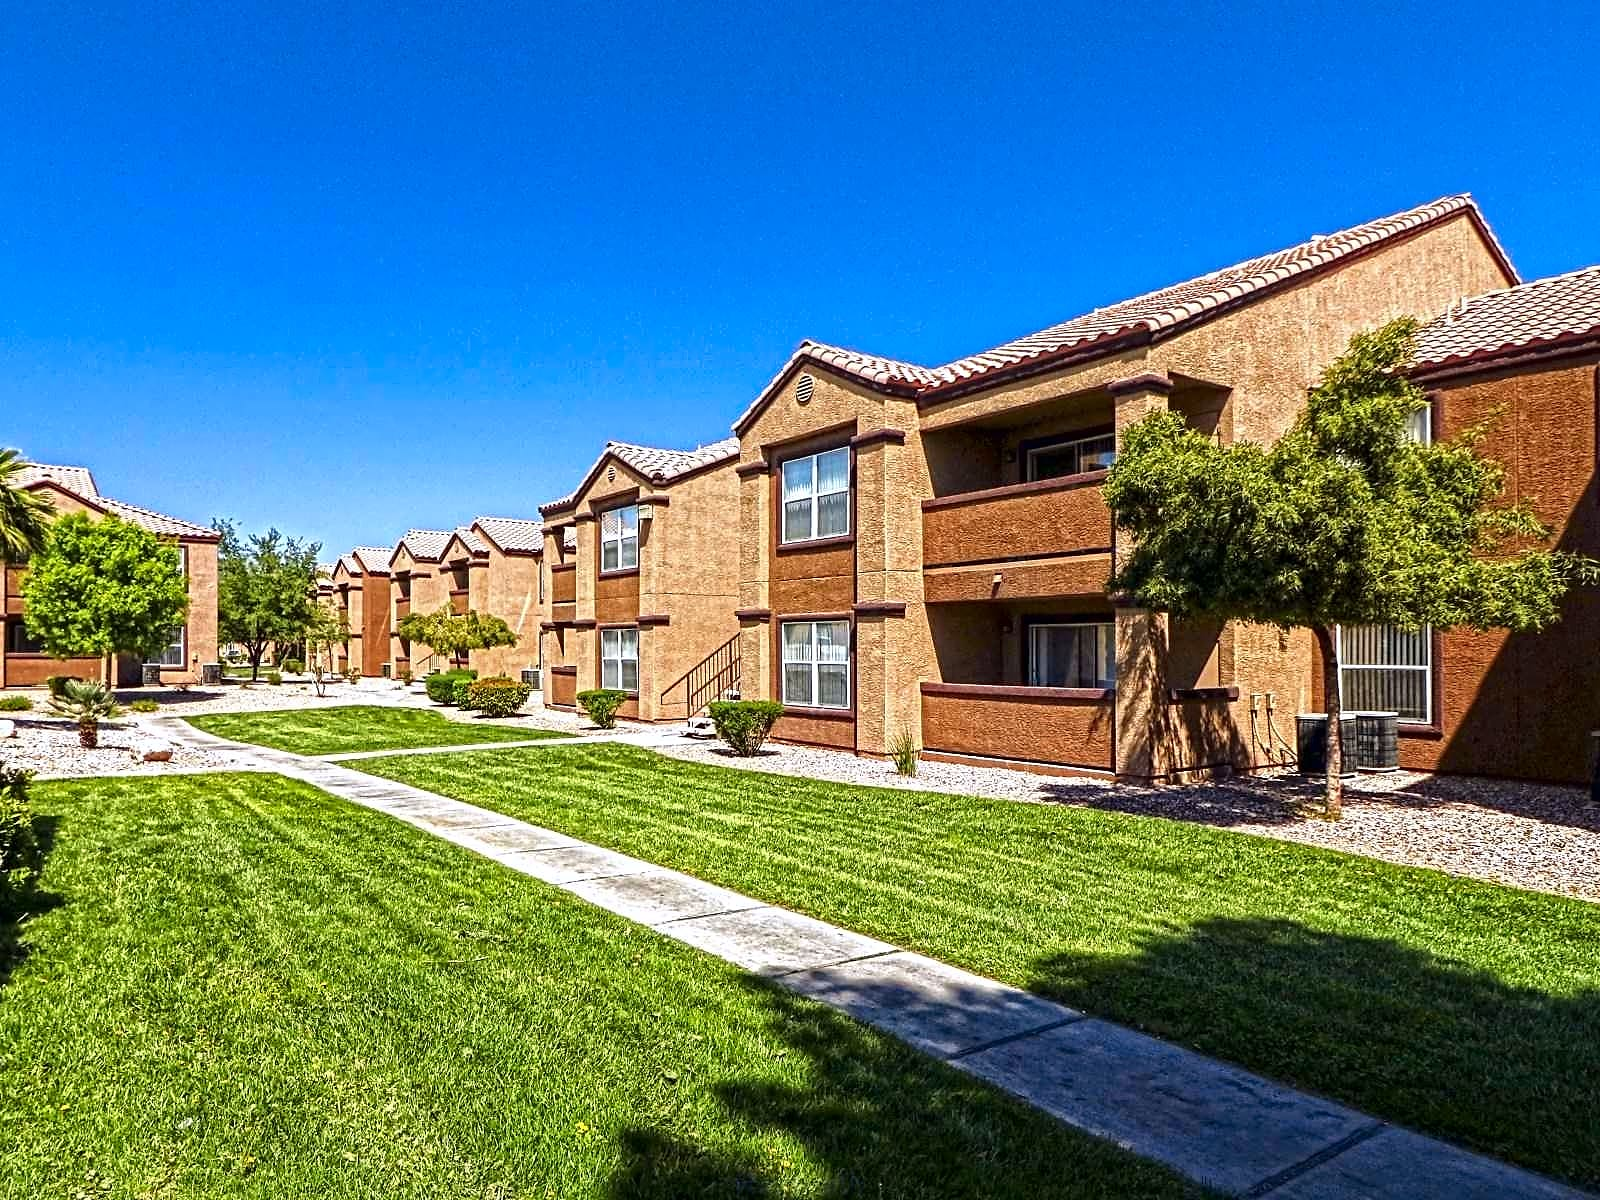 Apartments Near UNLV Monterra Apartment Homes for University of Nevada-Las Vegas Students in Las Vegas, NV